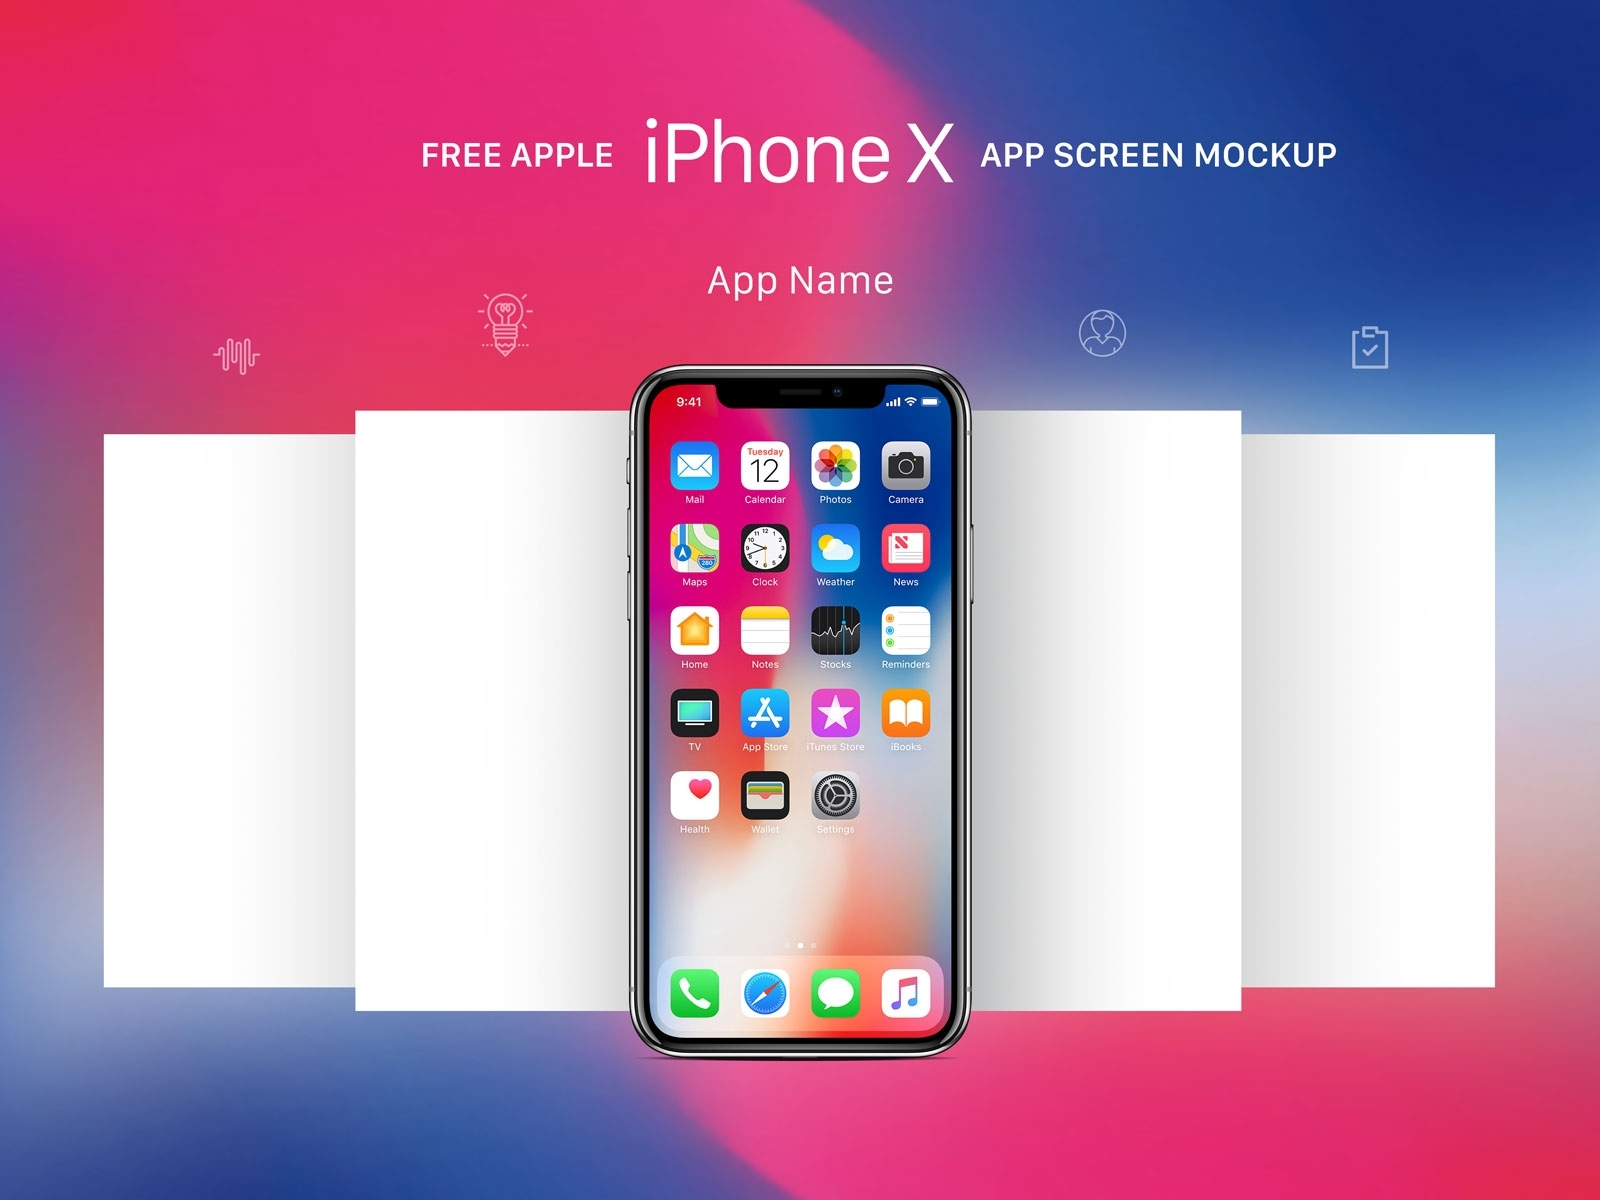 Free Apple Iphone X App Screen Mockup Psd - Good Mockups